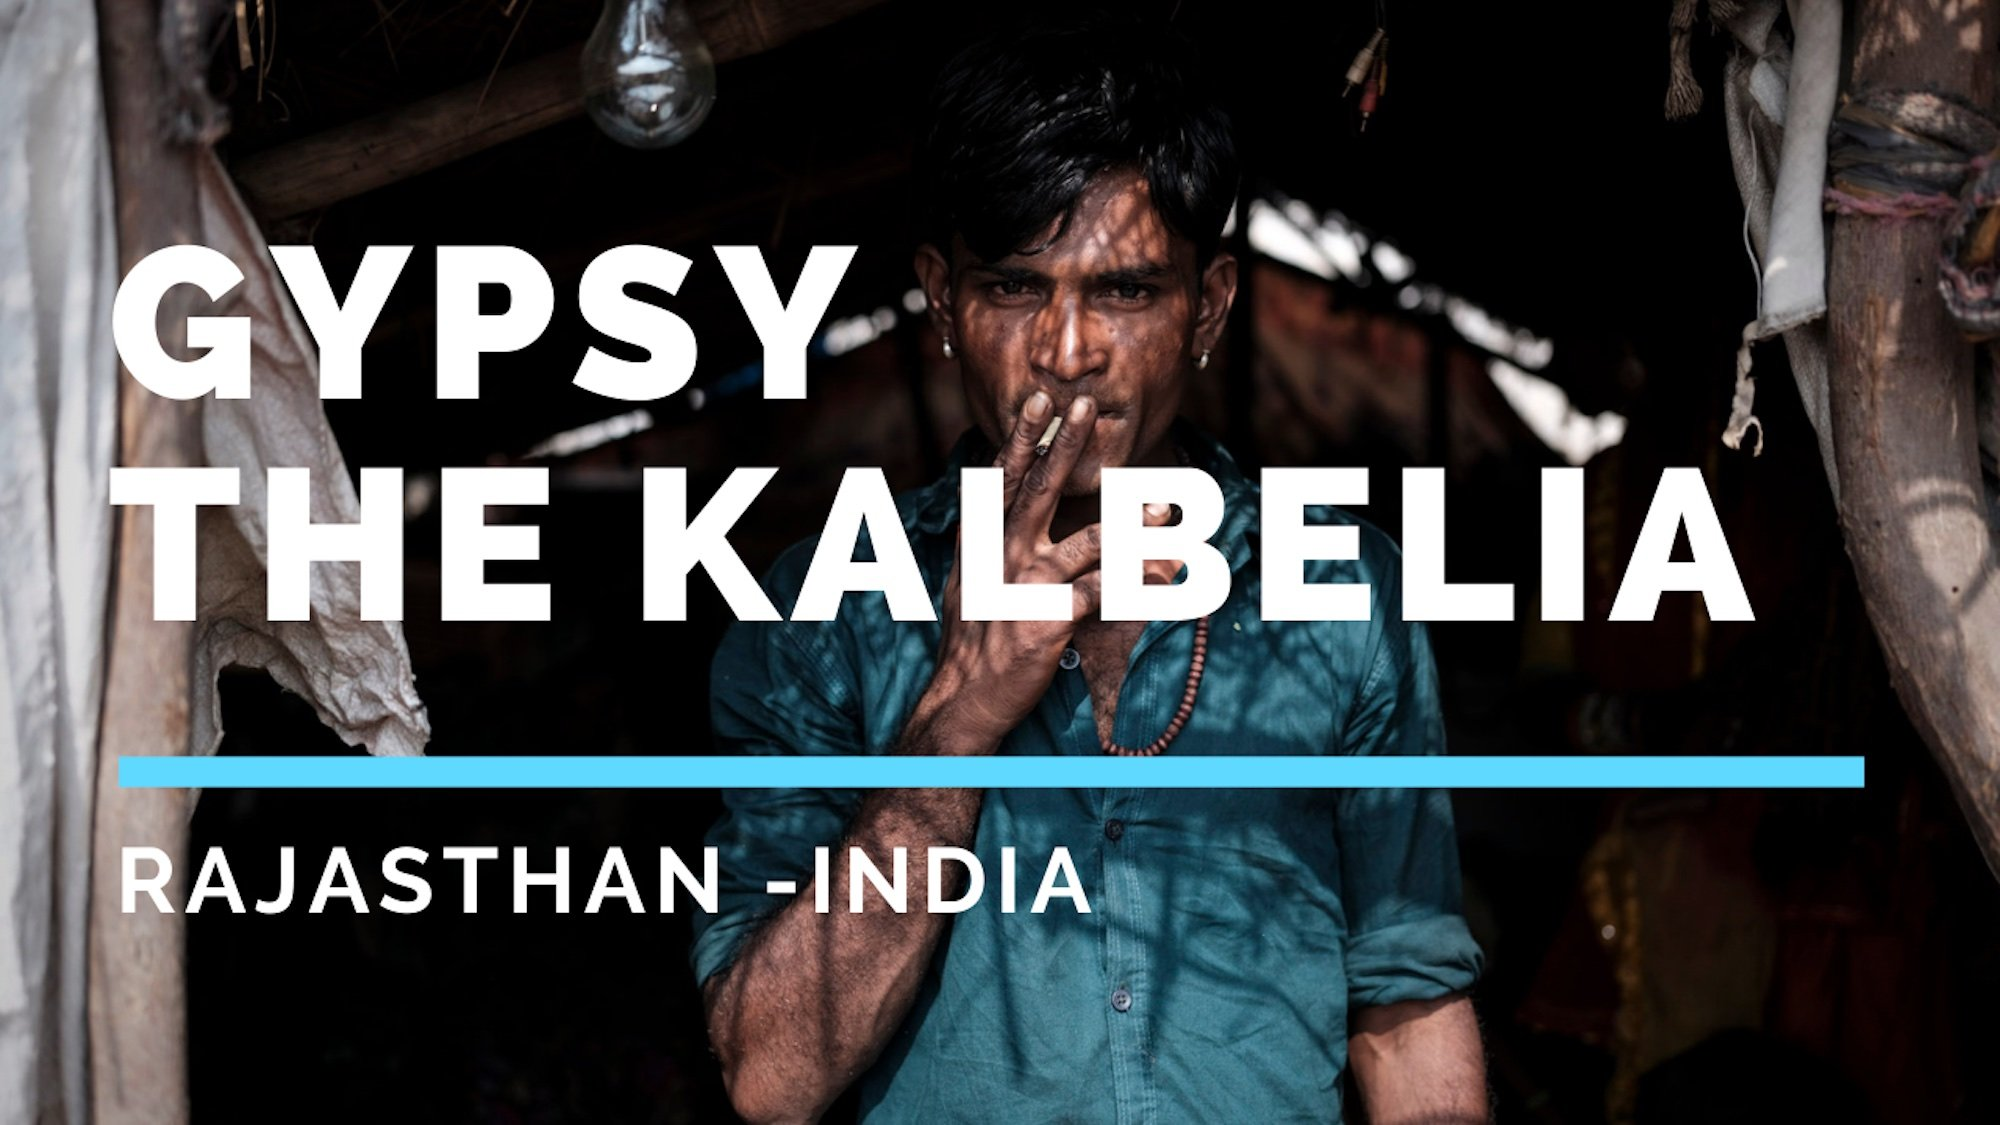 THE KALBELIA – Gypsies of Rajasthan, India